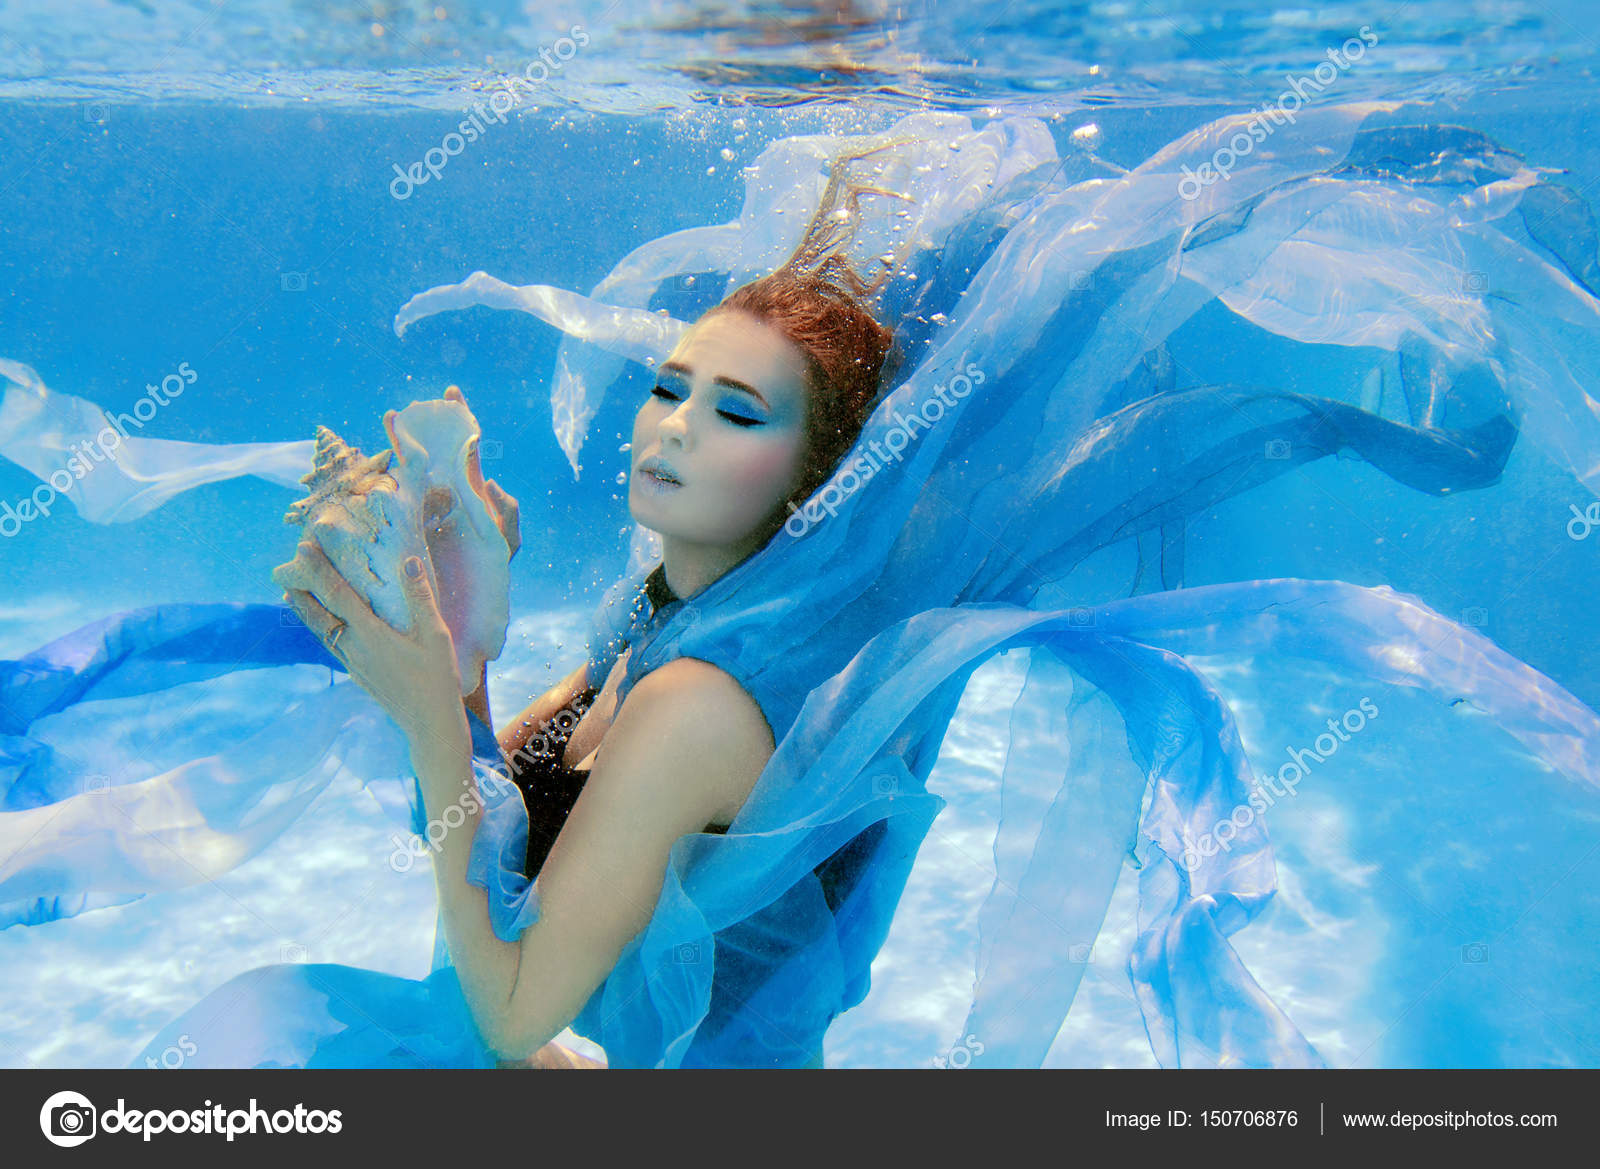 Underwater fashion portrait of beautiful young woman in blue